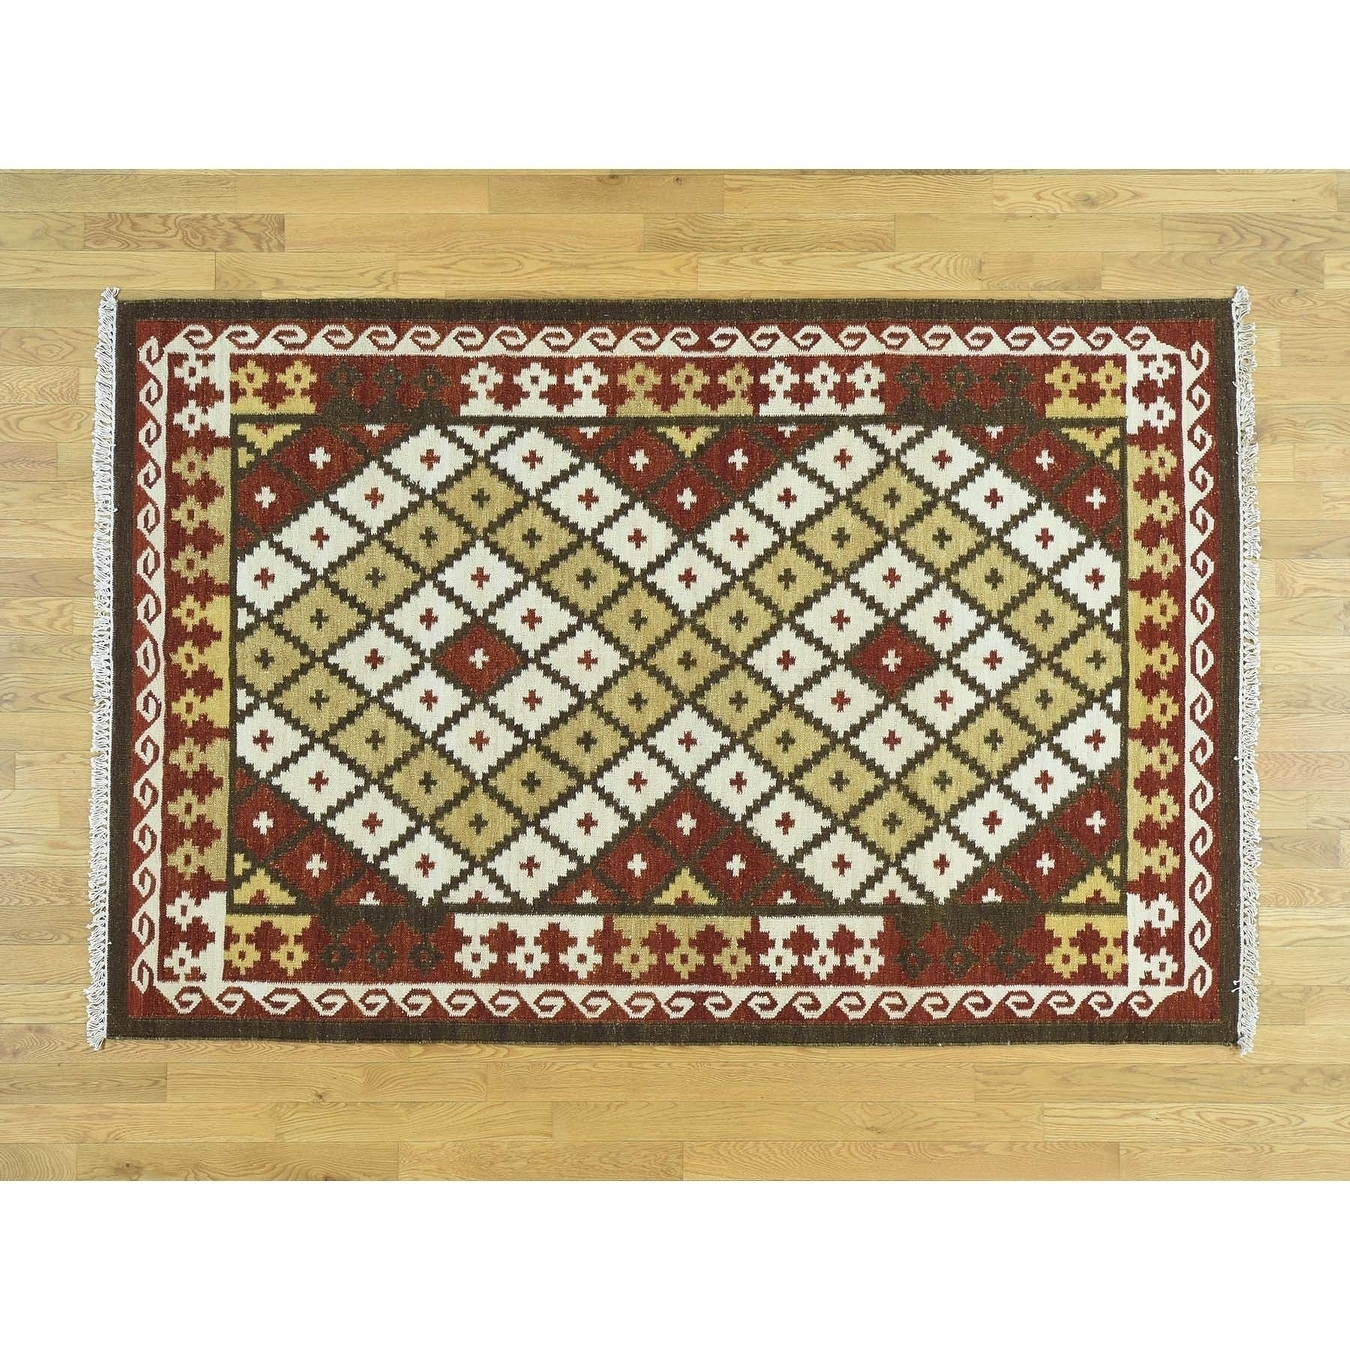 Hand Knotted Multicolored Flat Weave with Wool Oriental Rug - 53 x 8